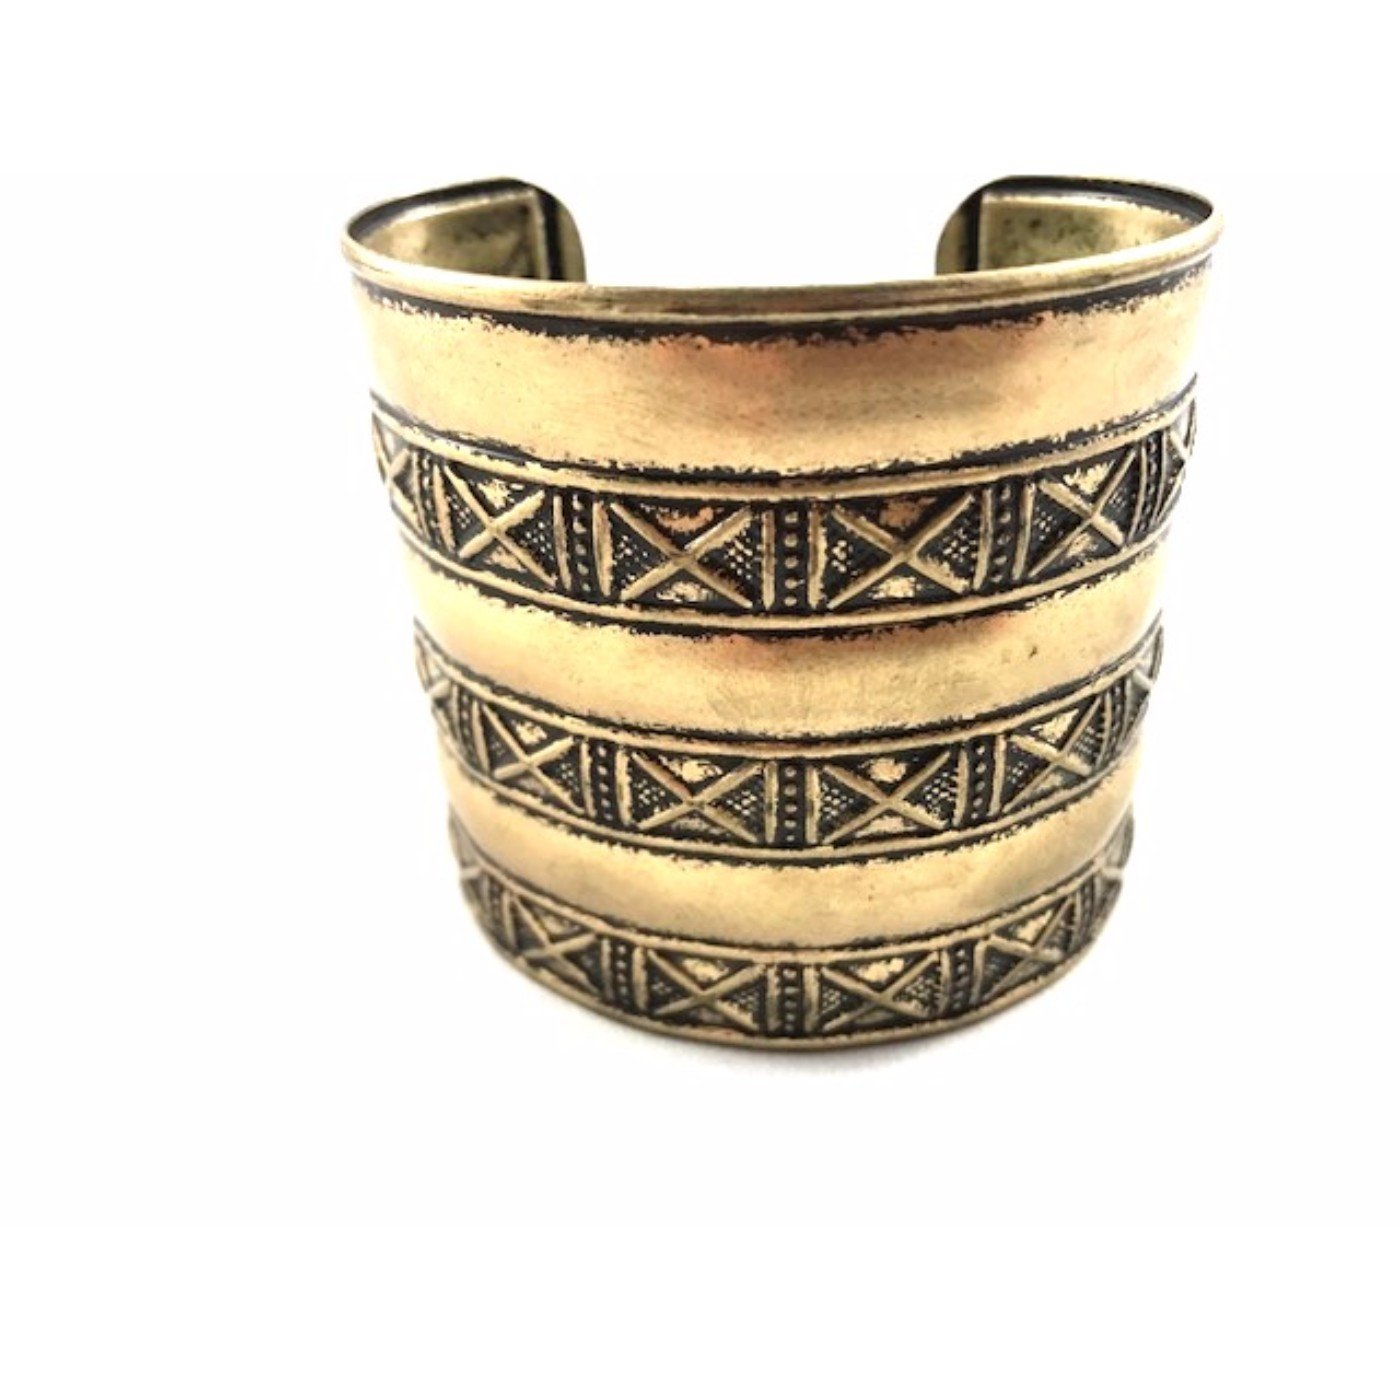 Global Huntress Retro Style Antique Gold Tone Embossed the Iconic Crisscross Motif Open End Cuff Bangle Bracelet